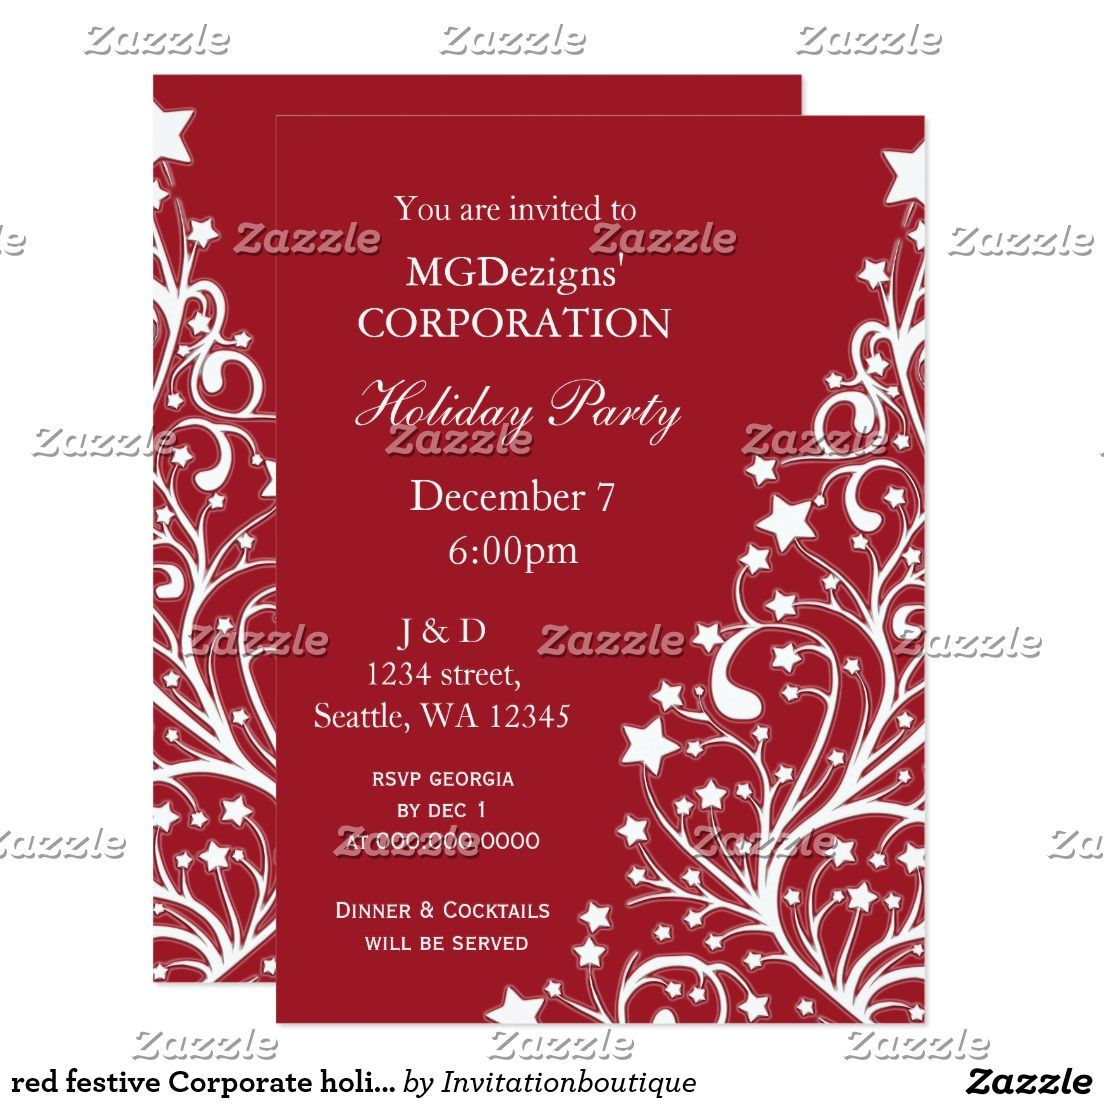 red festive Corporate holiday party Invites